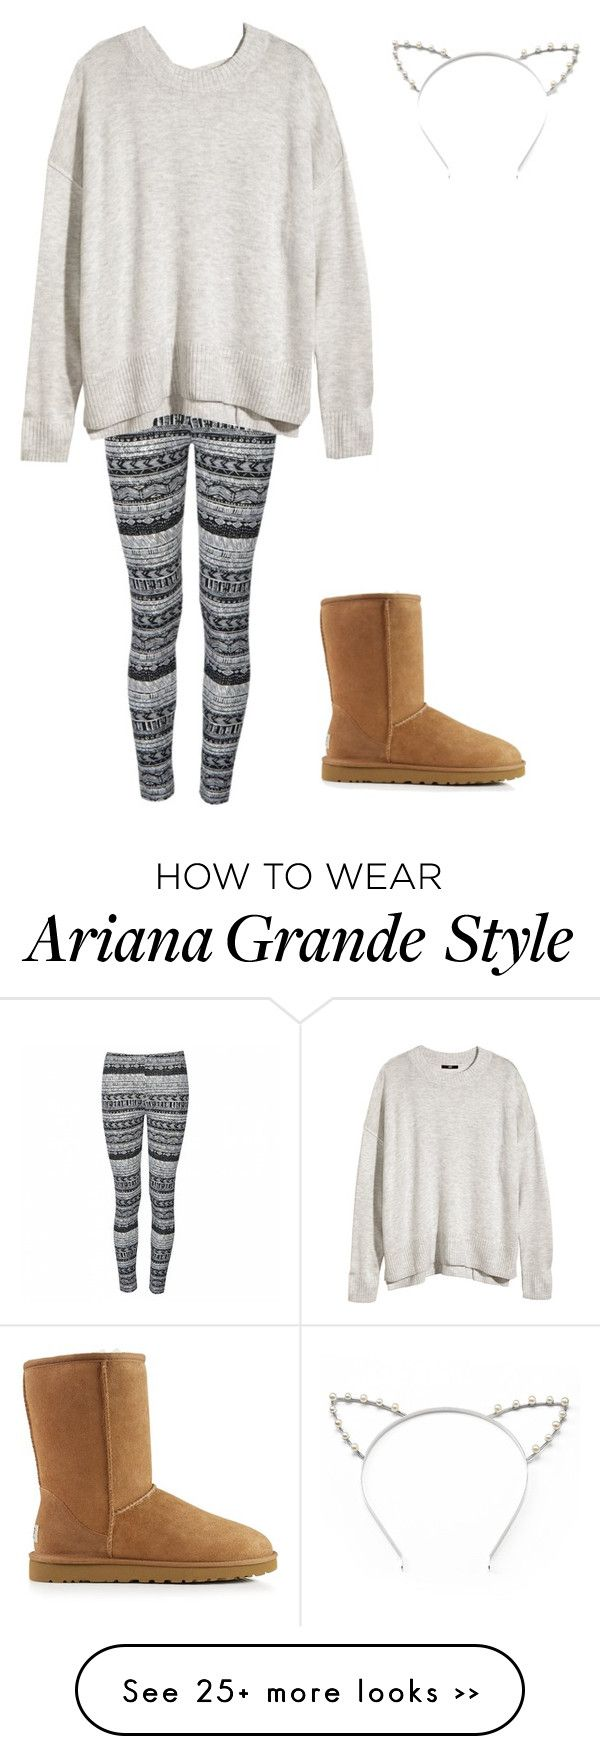 """Ariana Grande inspired casual winter outfit"" by superfluffy23 on Polyvore"